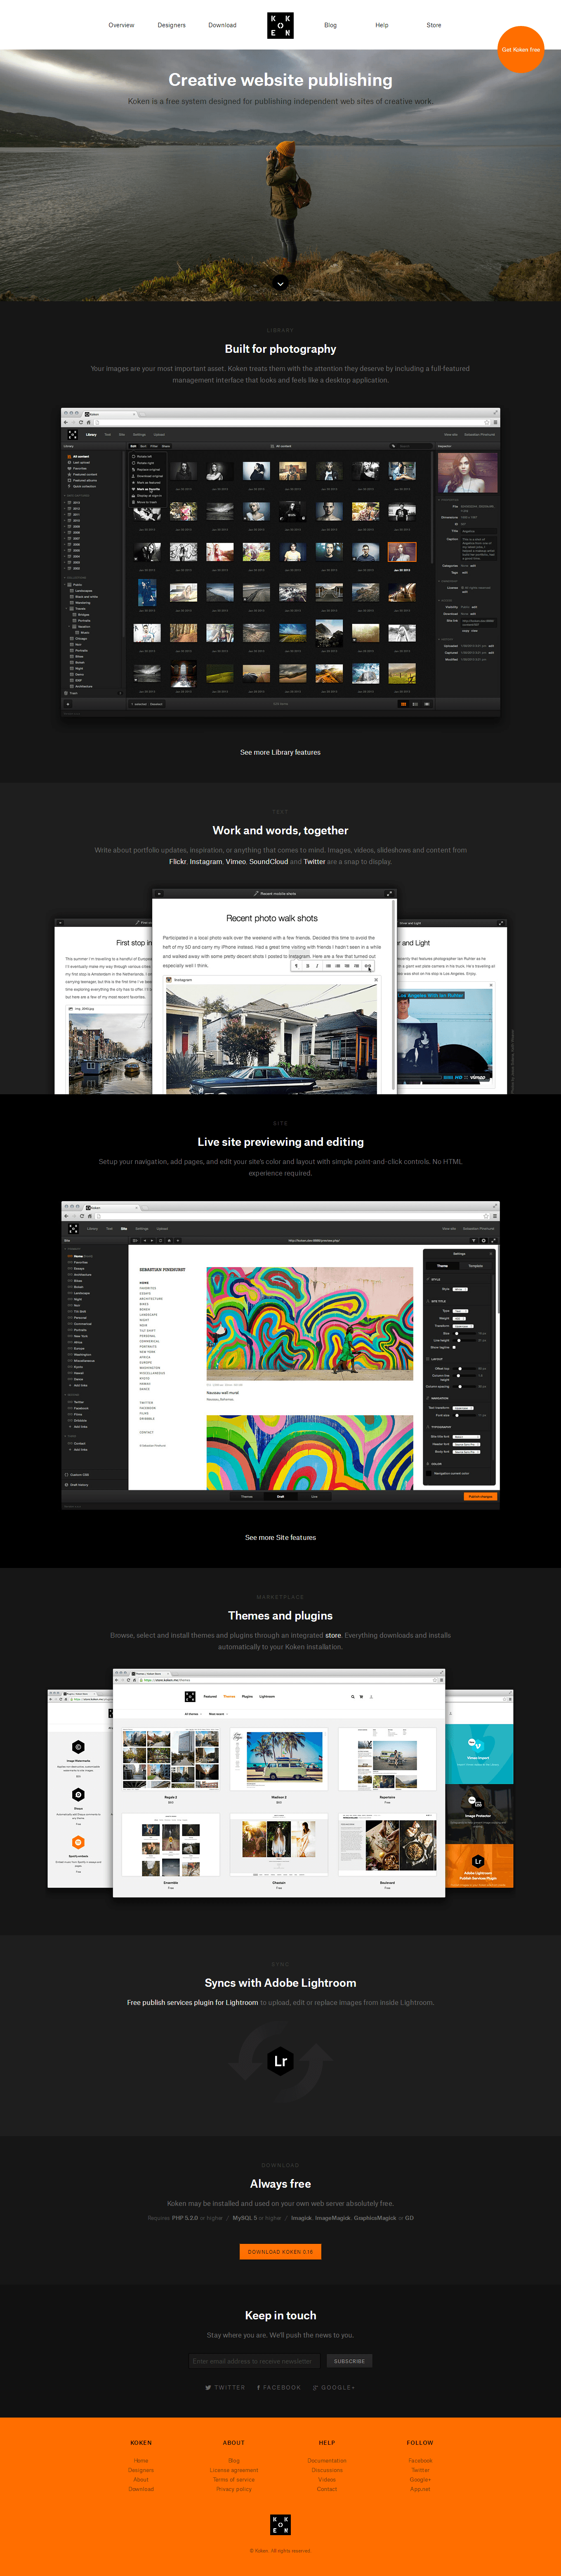 Koken is a free website publishing system developed for photographers, designers and creatives